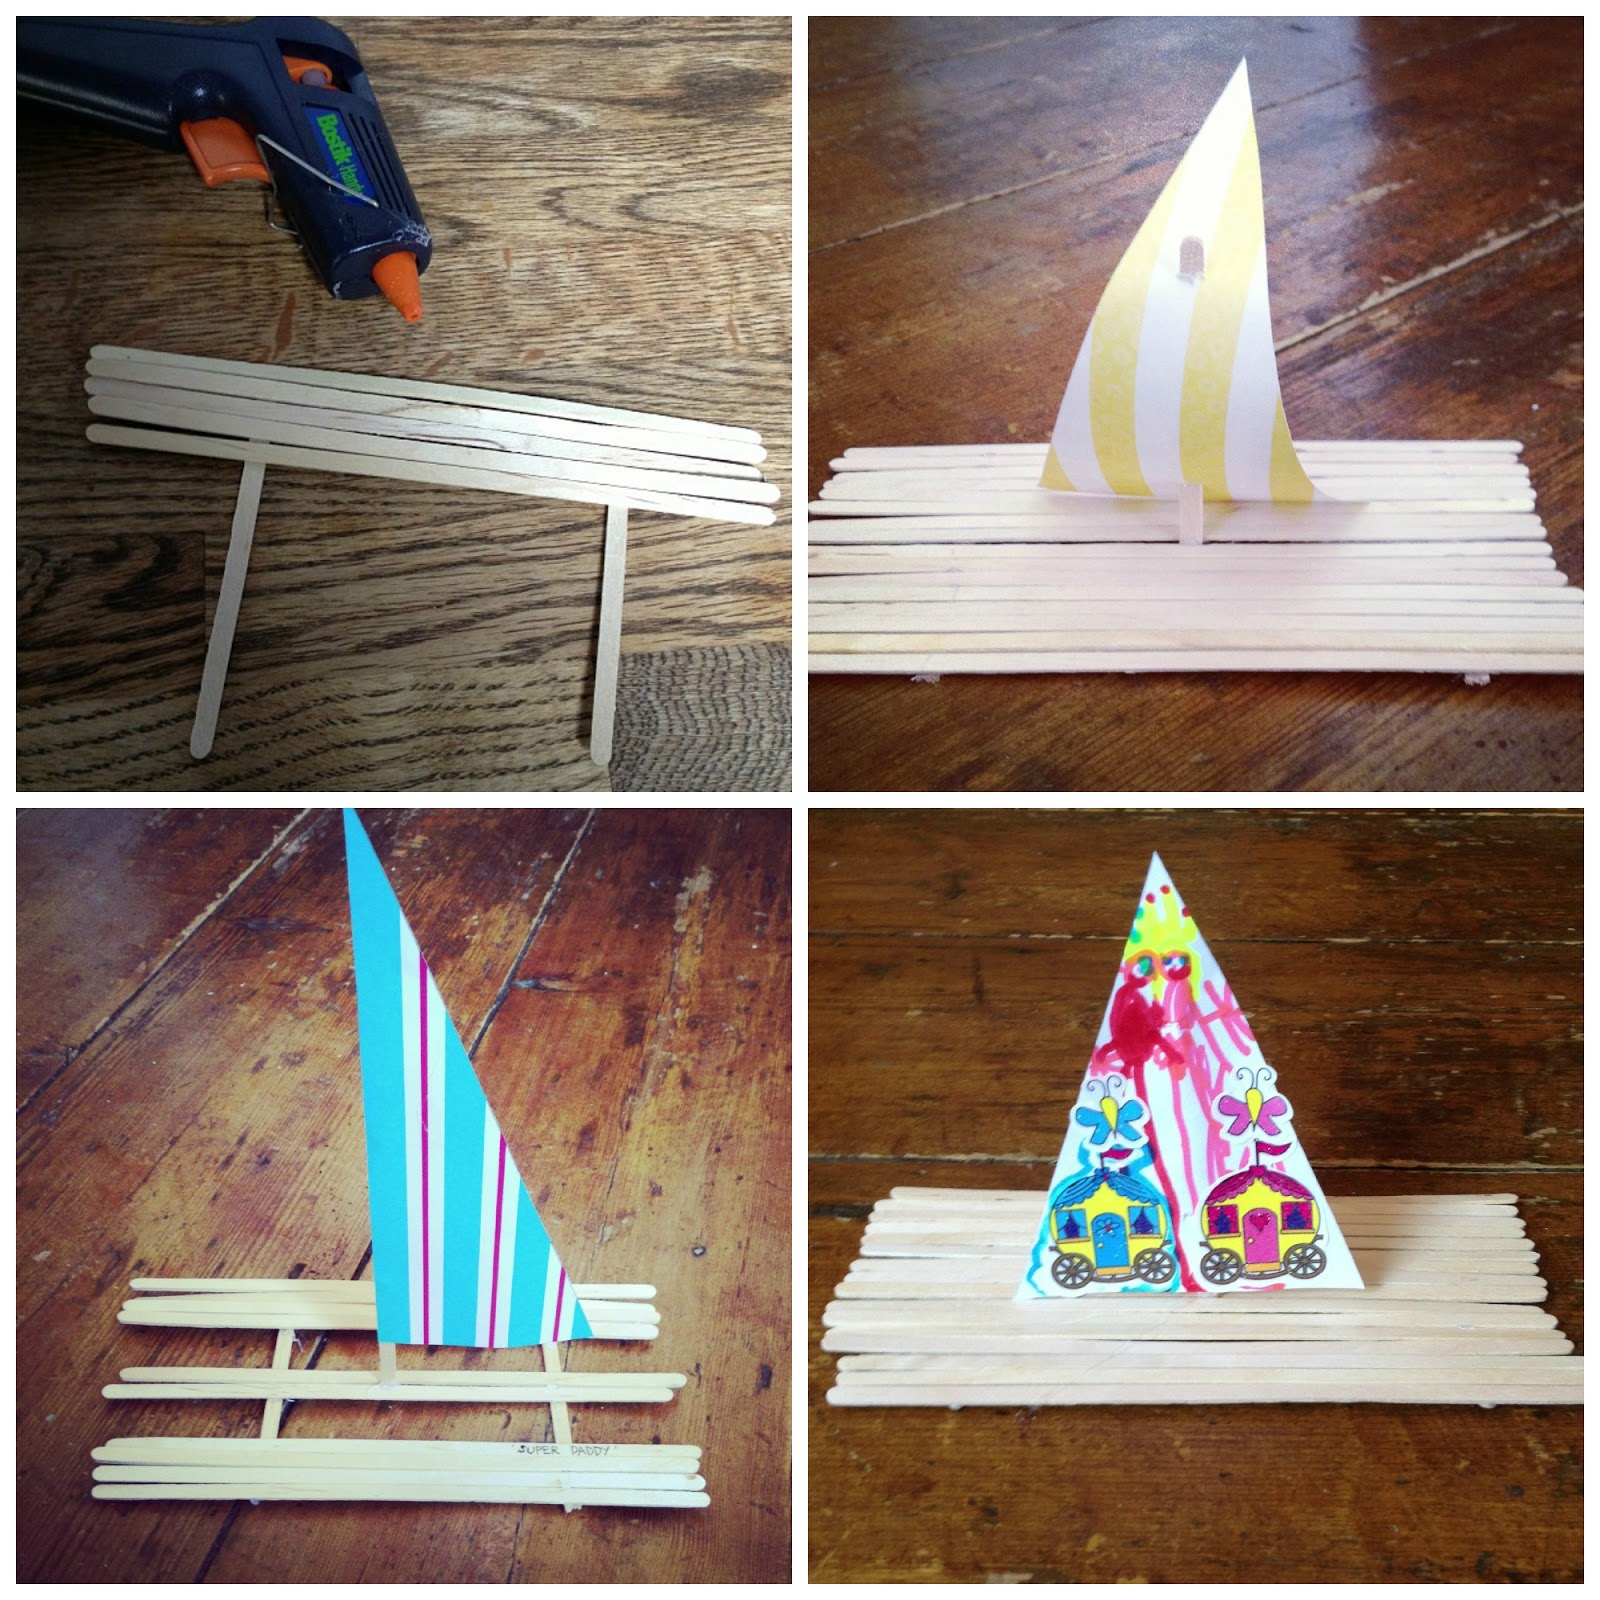 How to make a boat that floats out of popsicle sticks